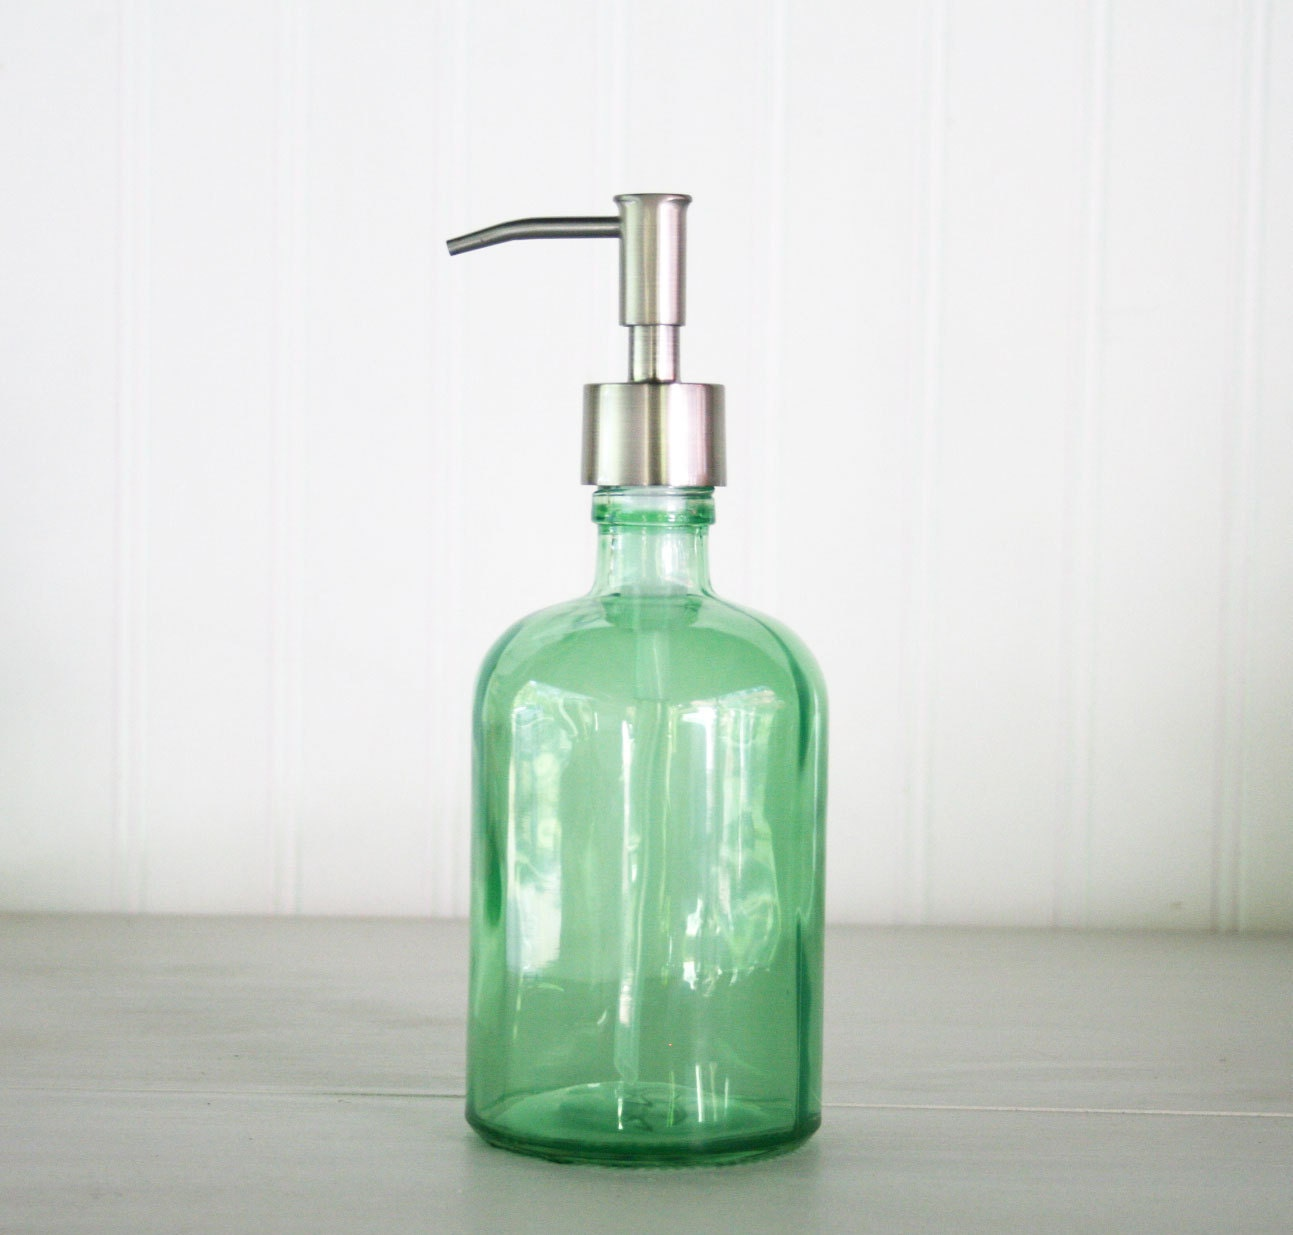 Shop for glass soap & lotion dispensers and other bathroom accessories products at disborunmaba.ga Shop. Browse our bathroom accessories selections and save today.